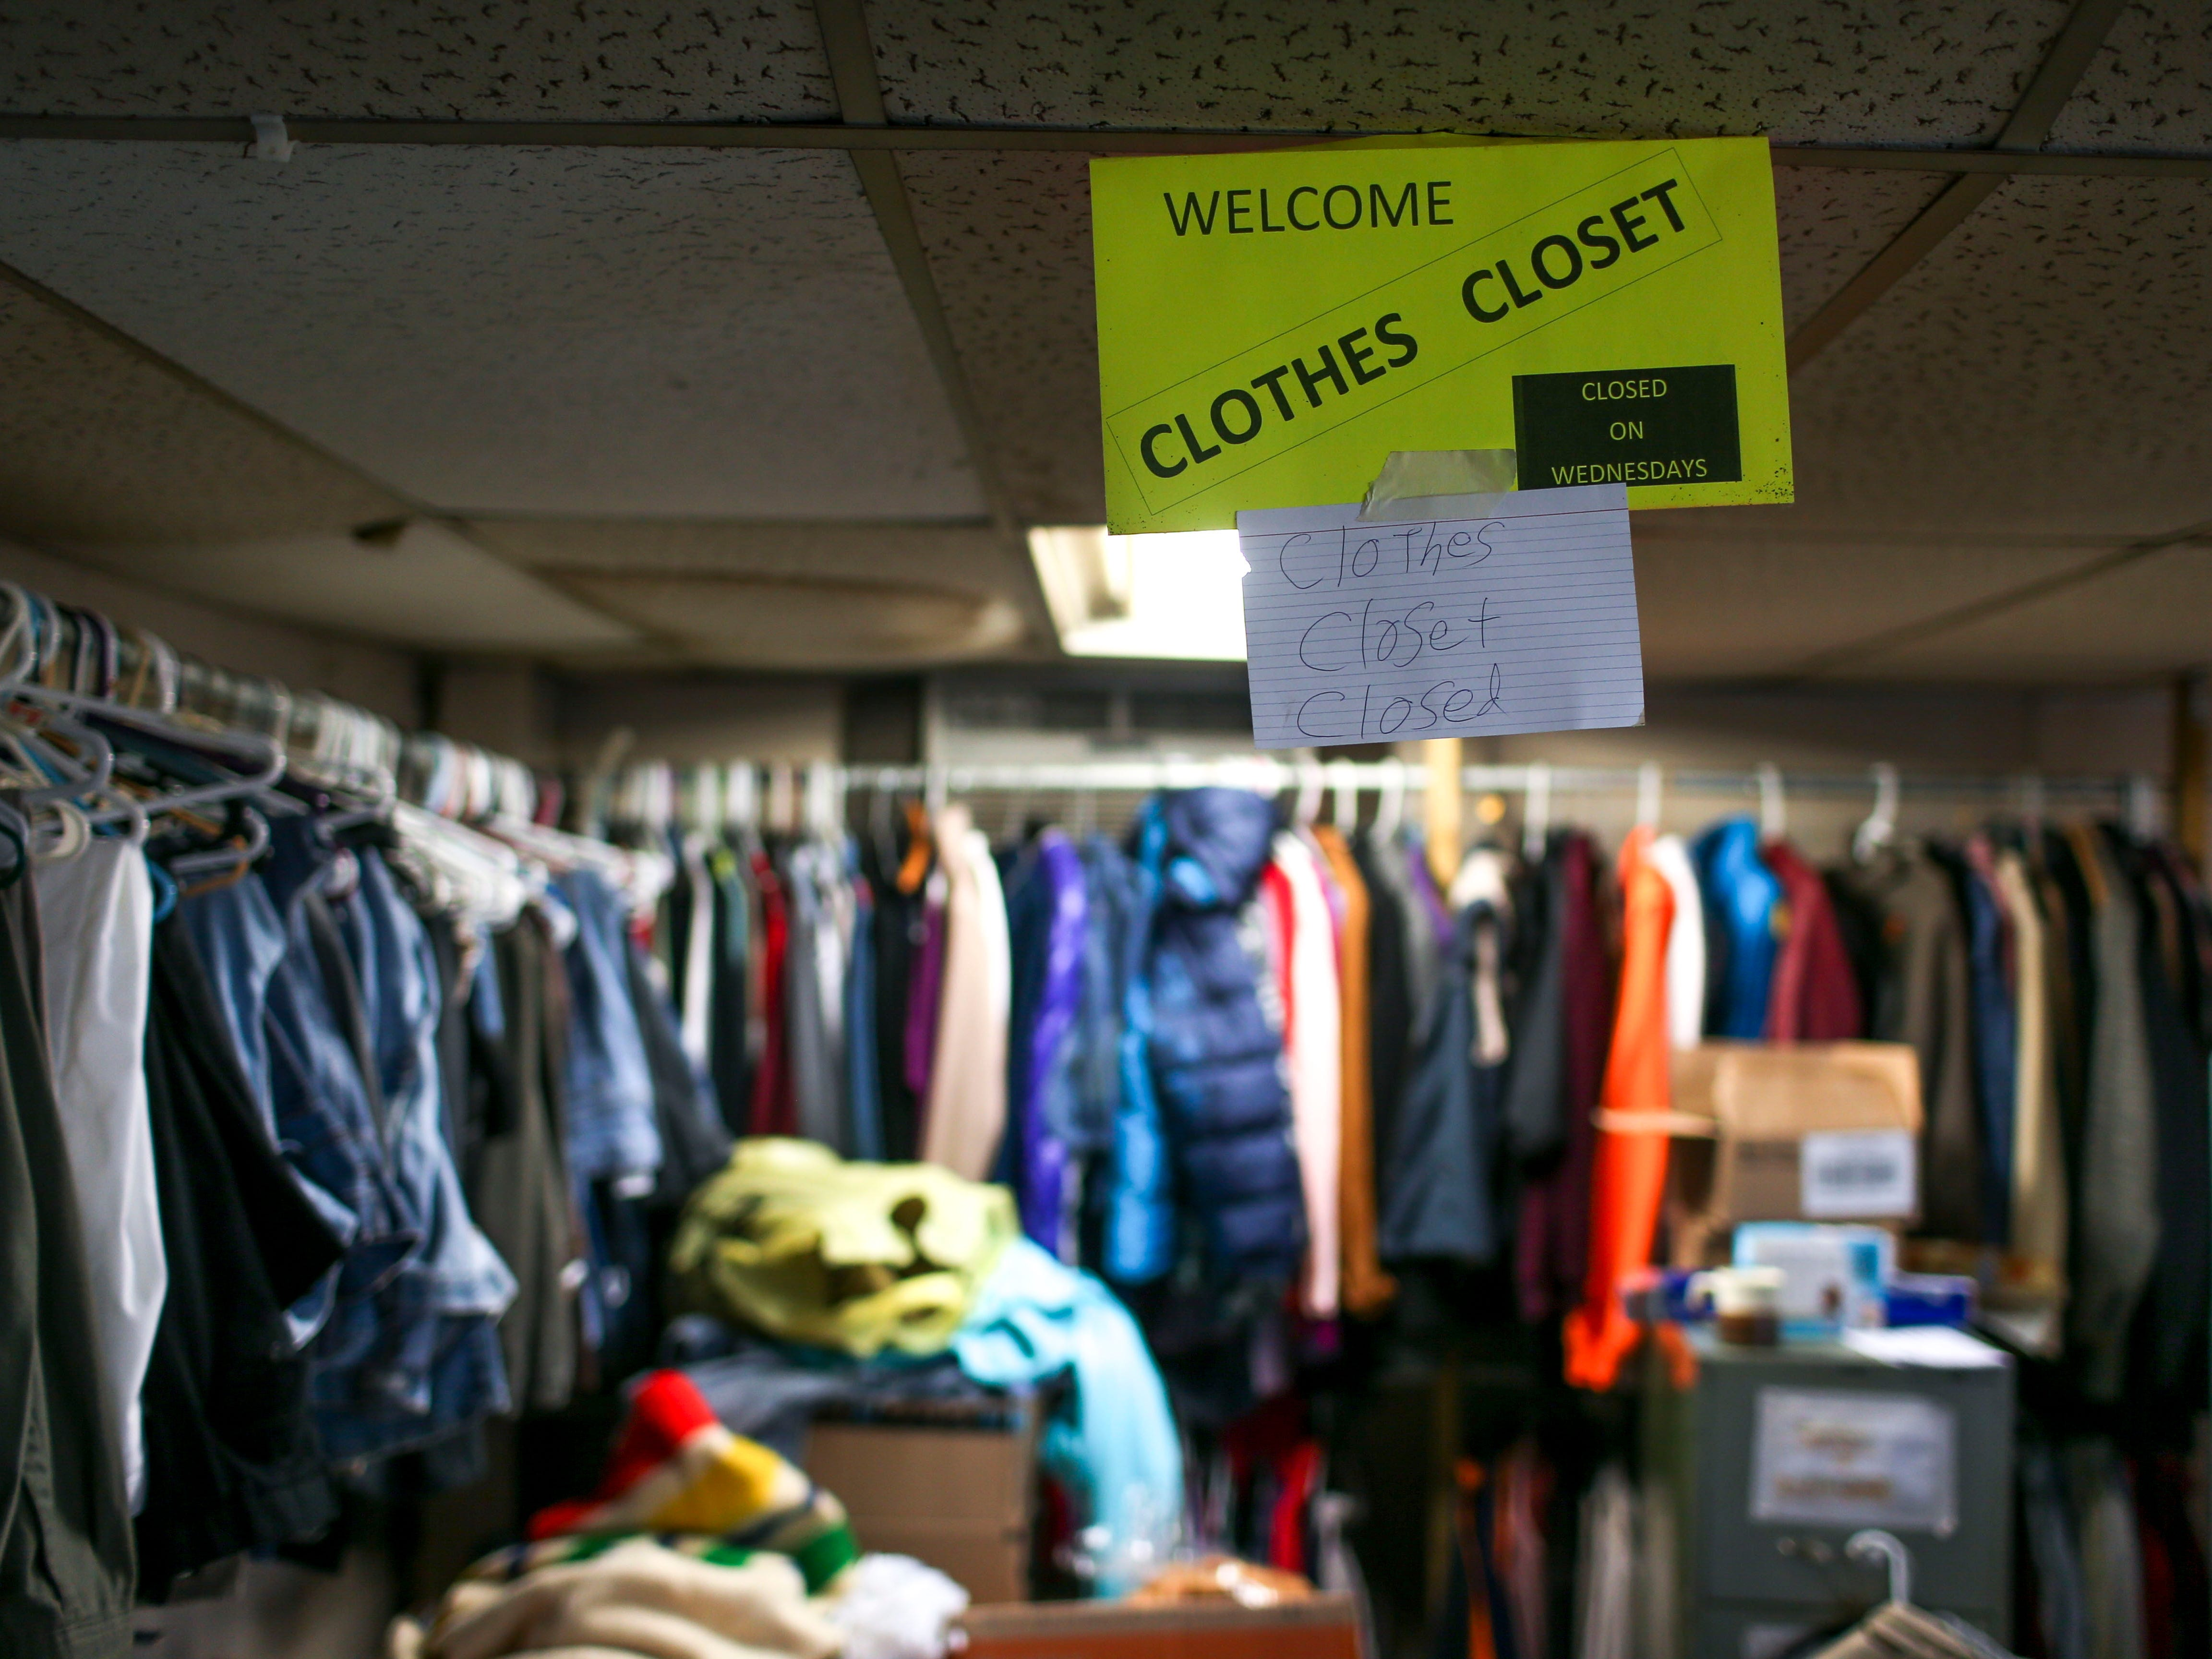 Spare clothing donated for those in need hang on racks in a back corner at the annual Thanksgiving meal put on by Safe Harbor Day Mission in Jackson, Tenn., on Wednesday, Nov. 21, 2018.